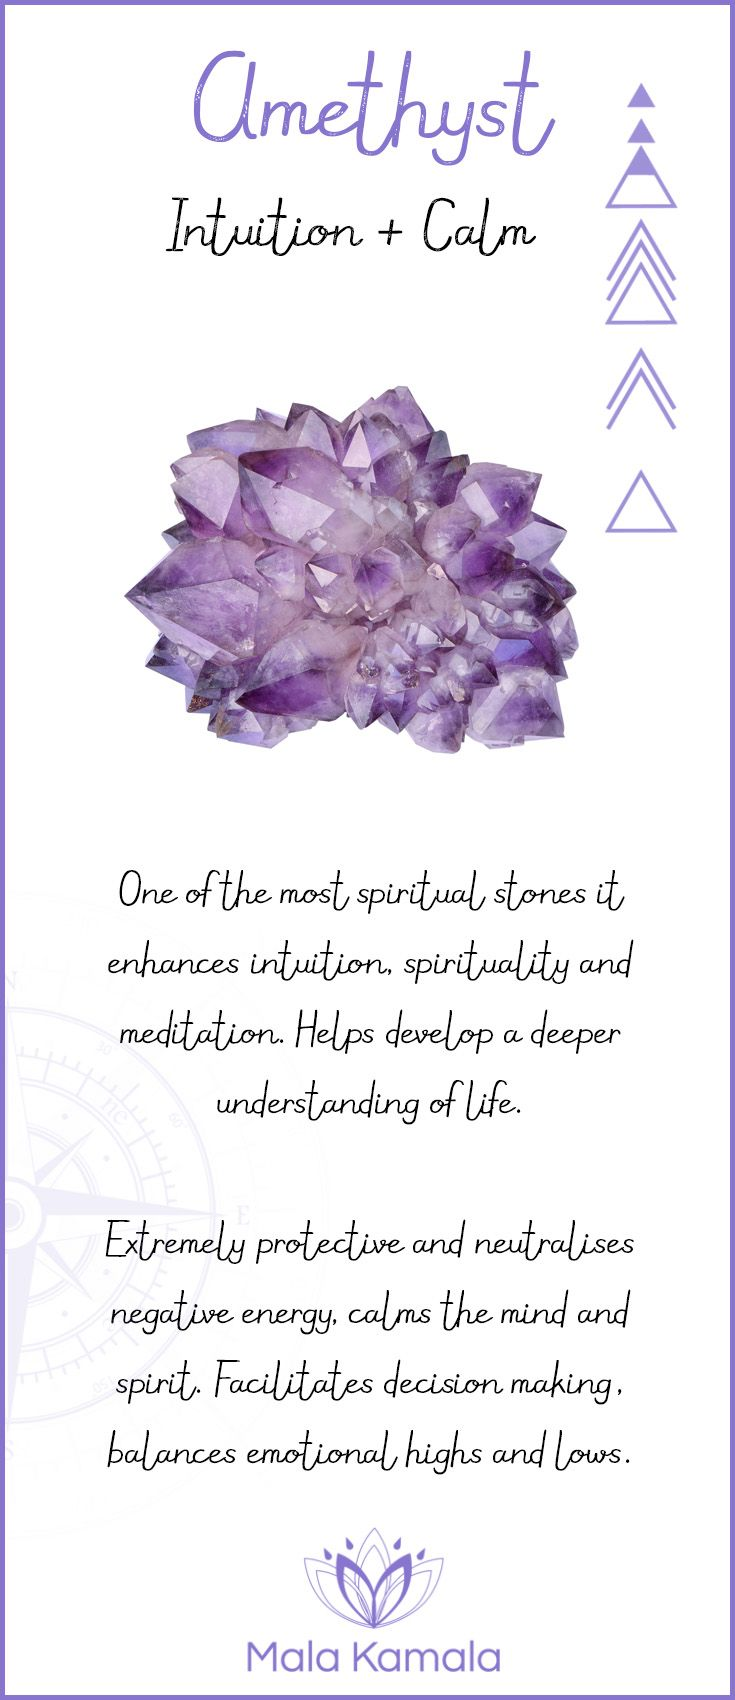 Pin To Save, Tap To Shop The Gem. What is the meaning and crystal and chakra healing properties of amethyst? Mala Kamala Mala Beads - Malas, Mala Beads, Mala Bracelets, Tiny Intentions, Baby Necklaces, Yoga Jewelry, Meditation Jewelry, Baltic Amber Neckl